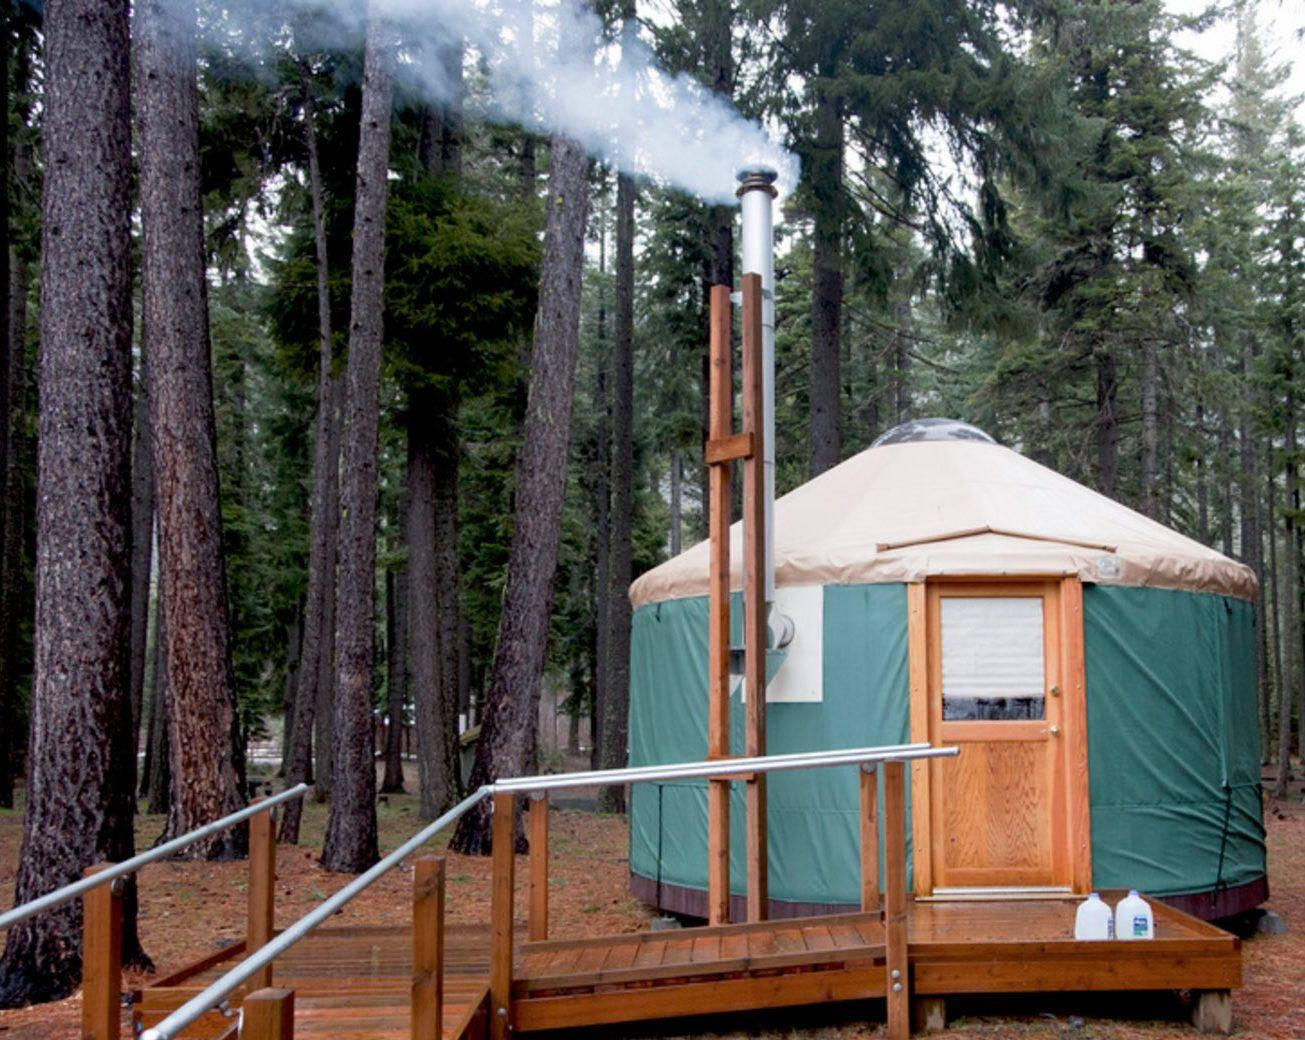 Yurt Camping / Read more than 20 reviews and choose a room why tourists like yurt camping.